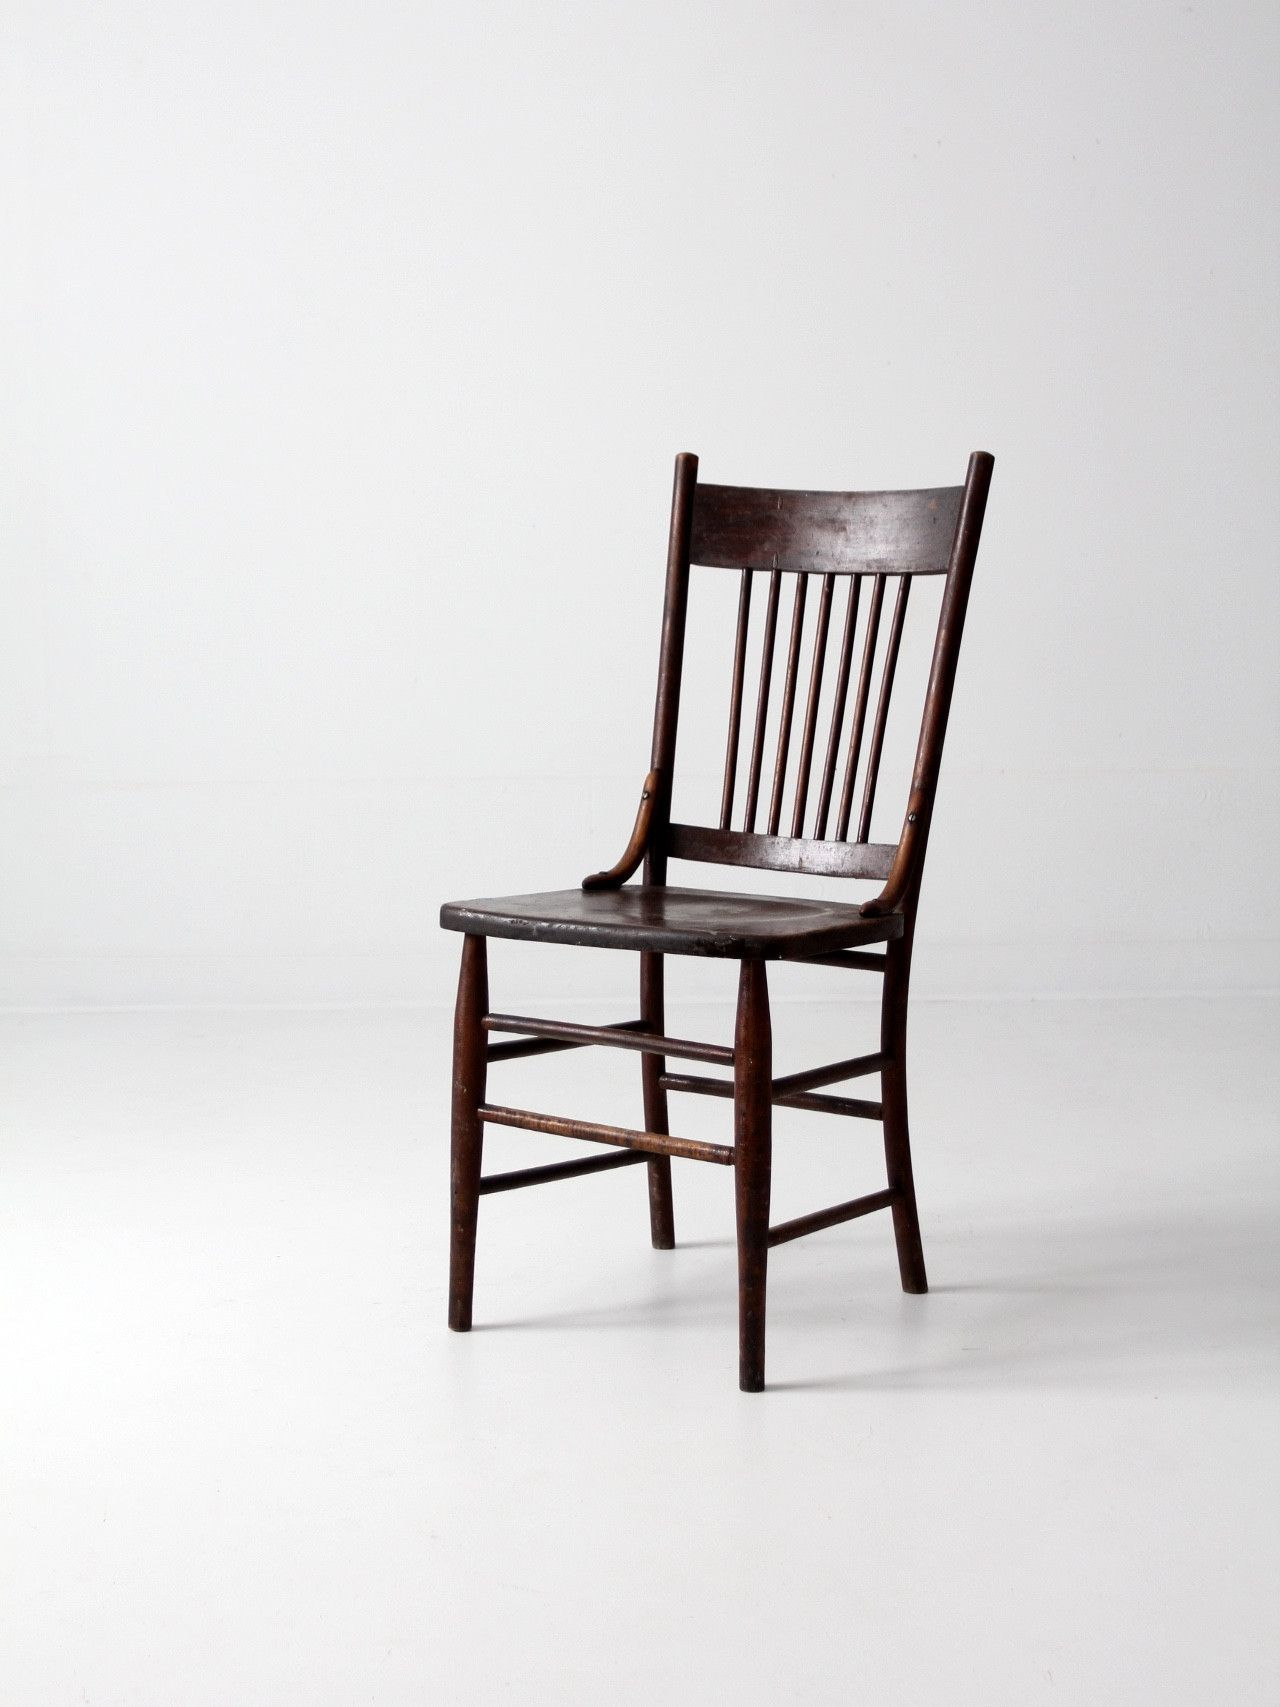 An Antique Spindle Back Chair The Wood Dining Chair Features Simple Sleek Lines With A Dark Tone Stain It Has Slen Chair Wood Dining Chairs Farmhouse Chairs